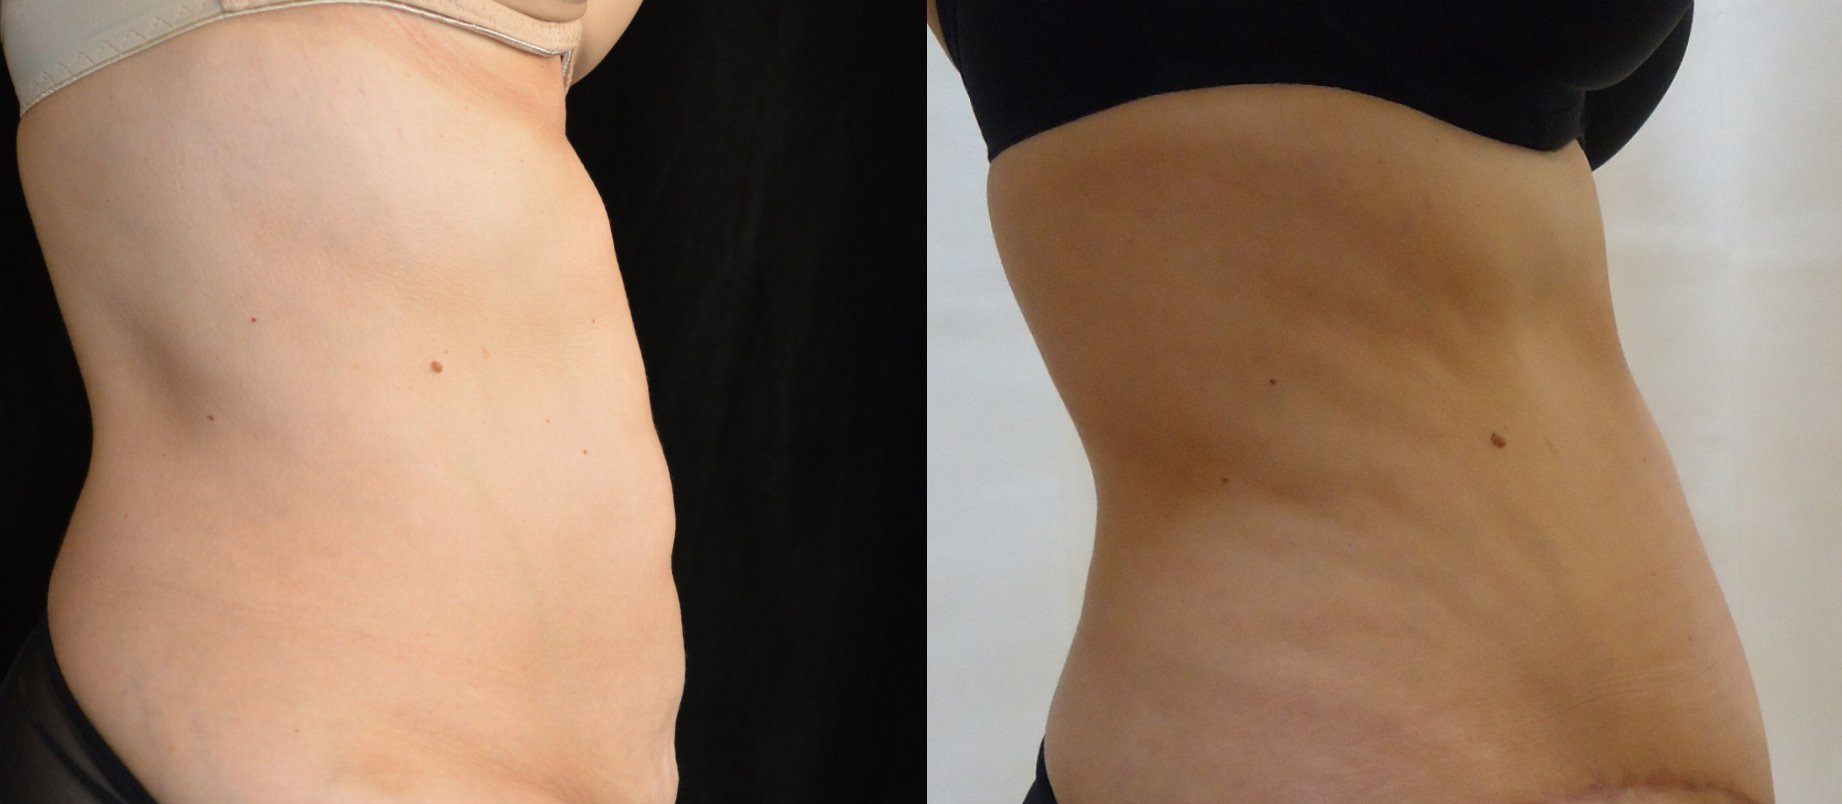 45-year-old 4 months after surgery removal of 817 gms. side view edit